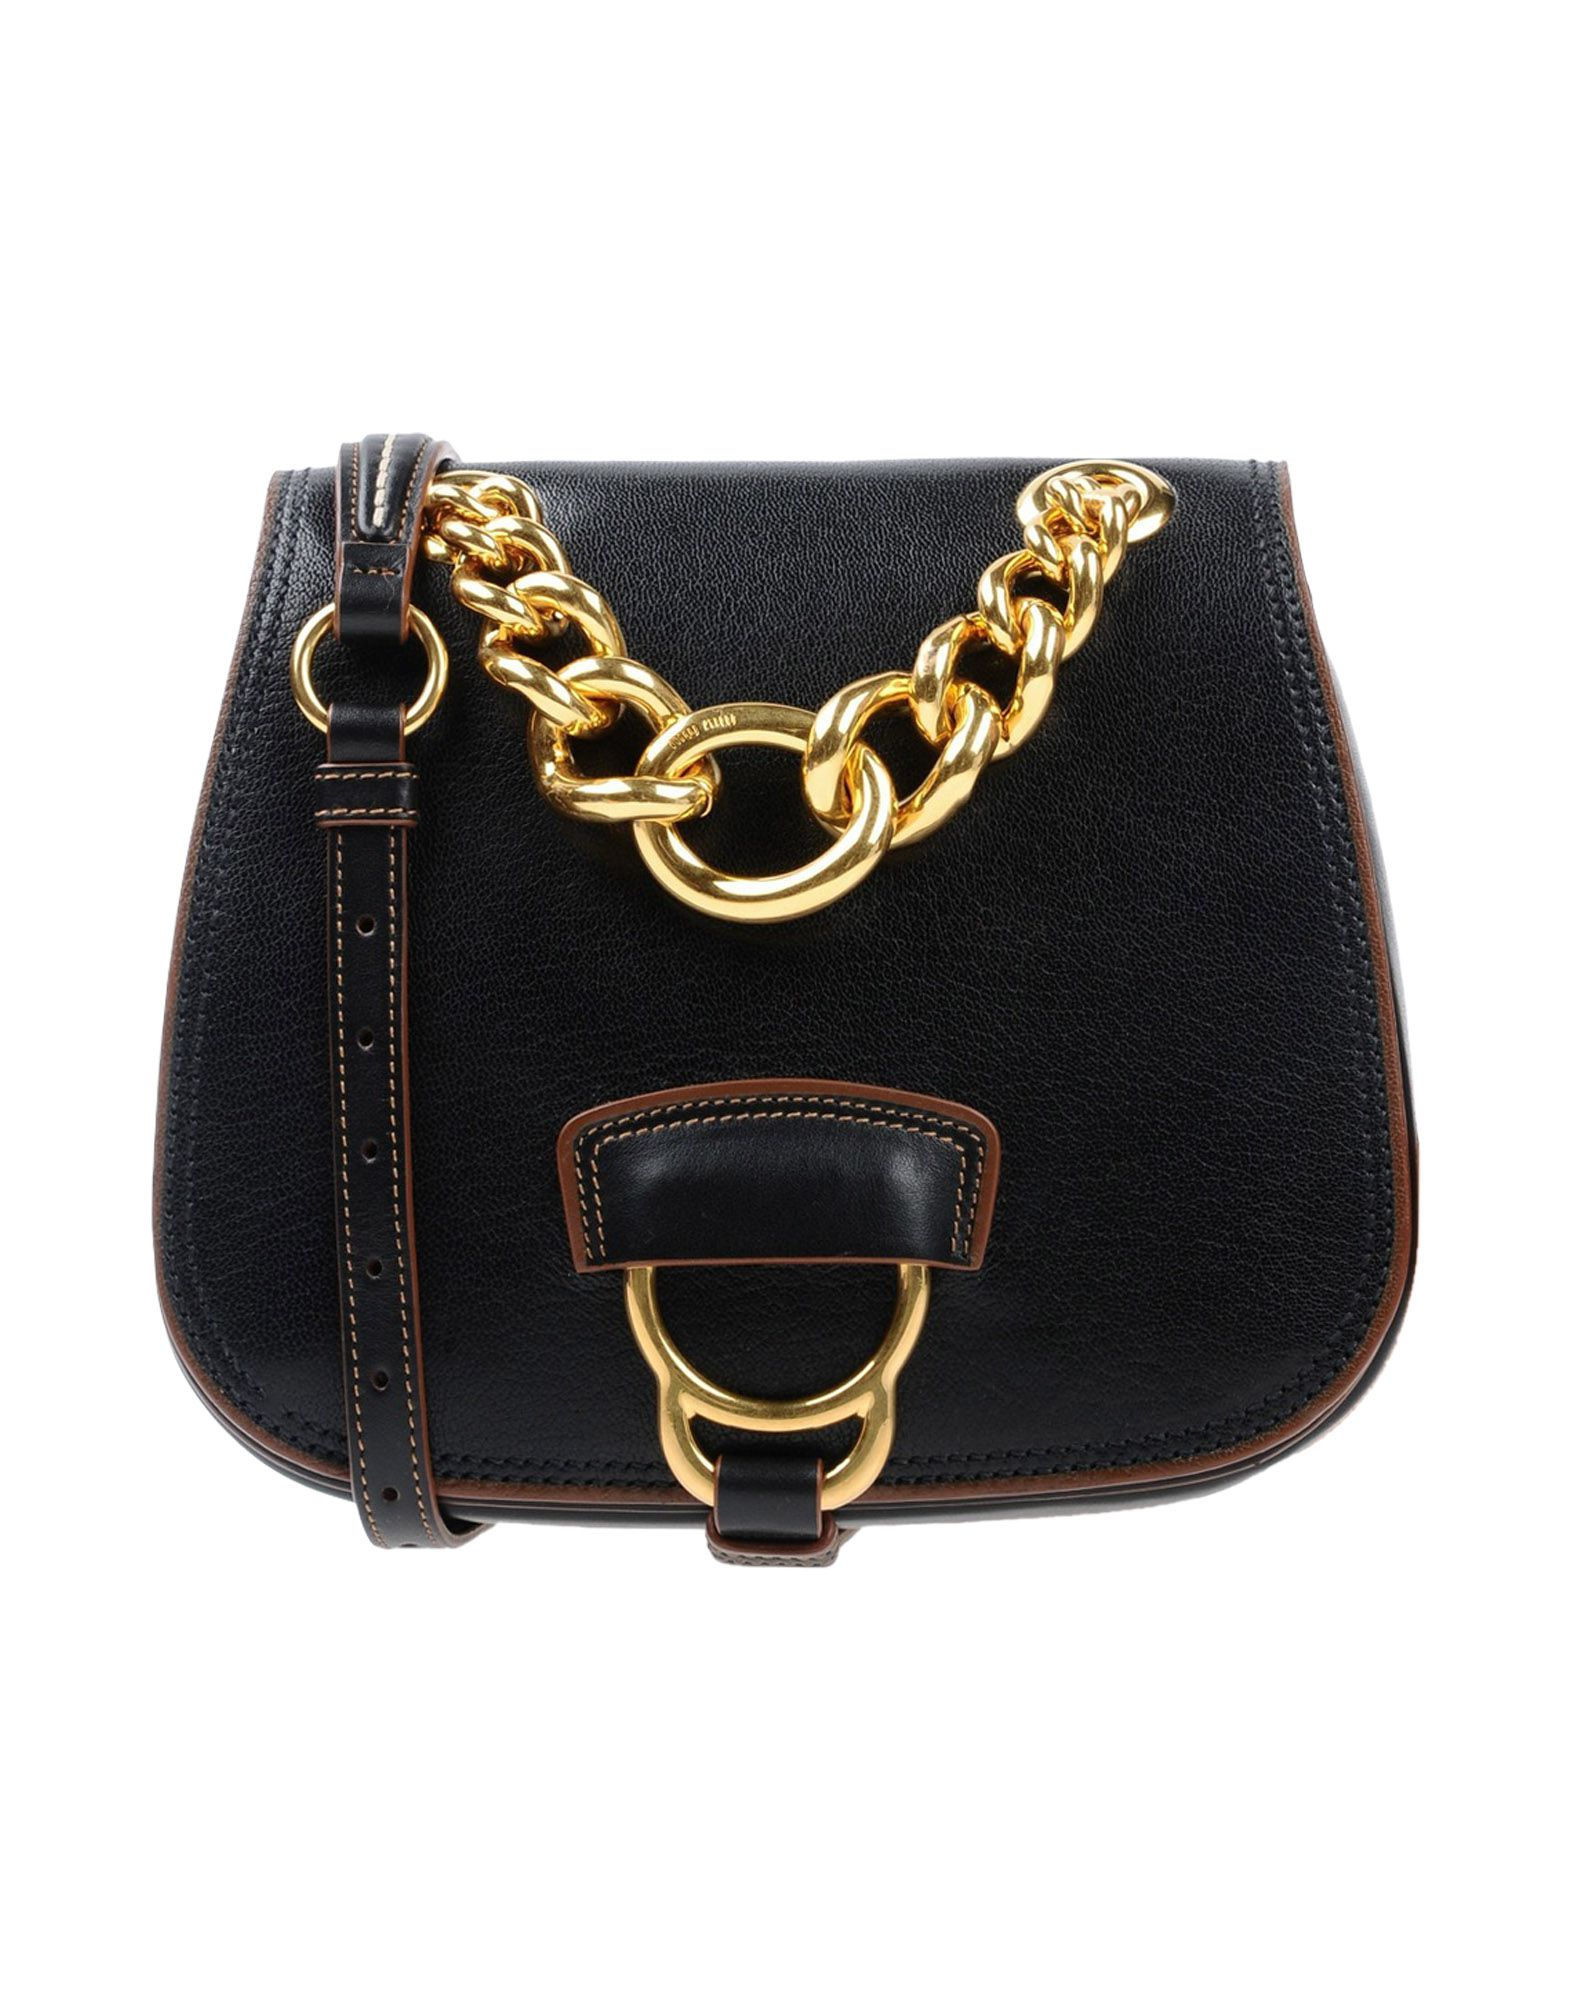 MIU MIU Cross-body bags - Item 45369303